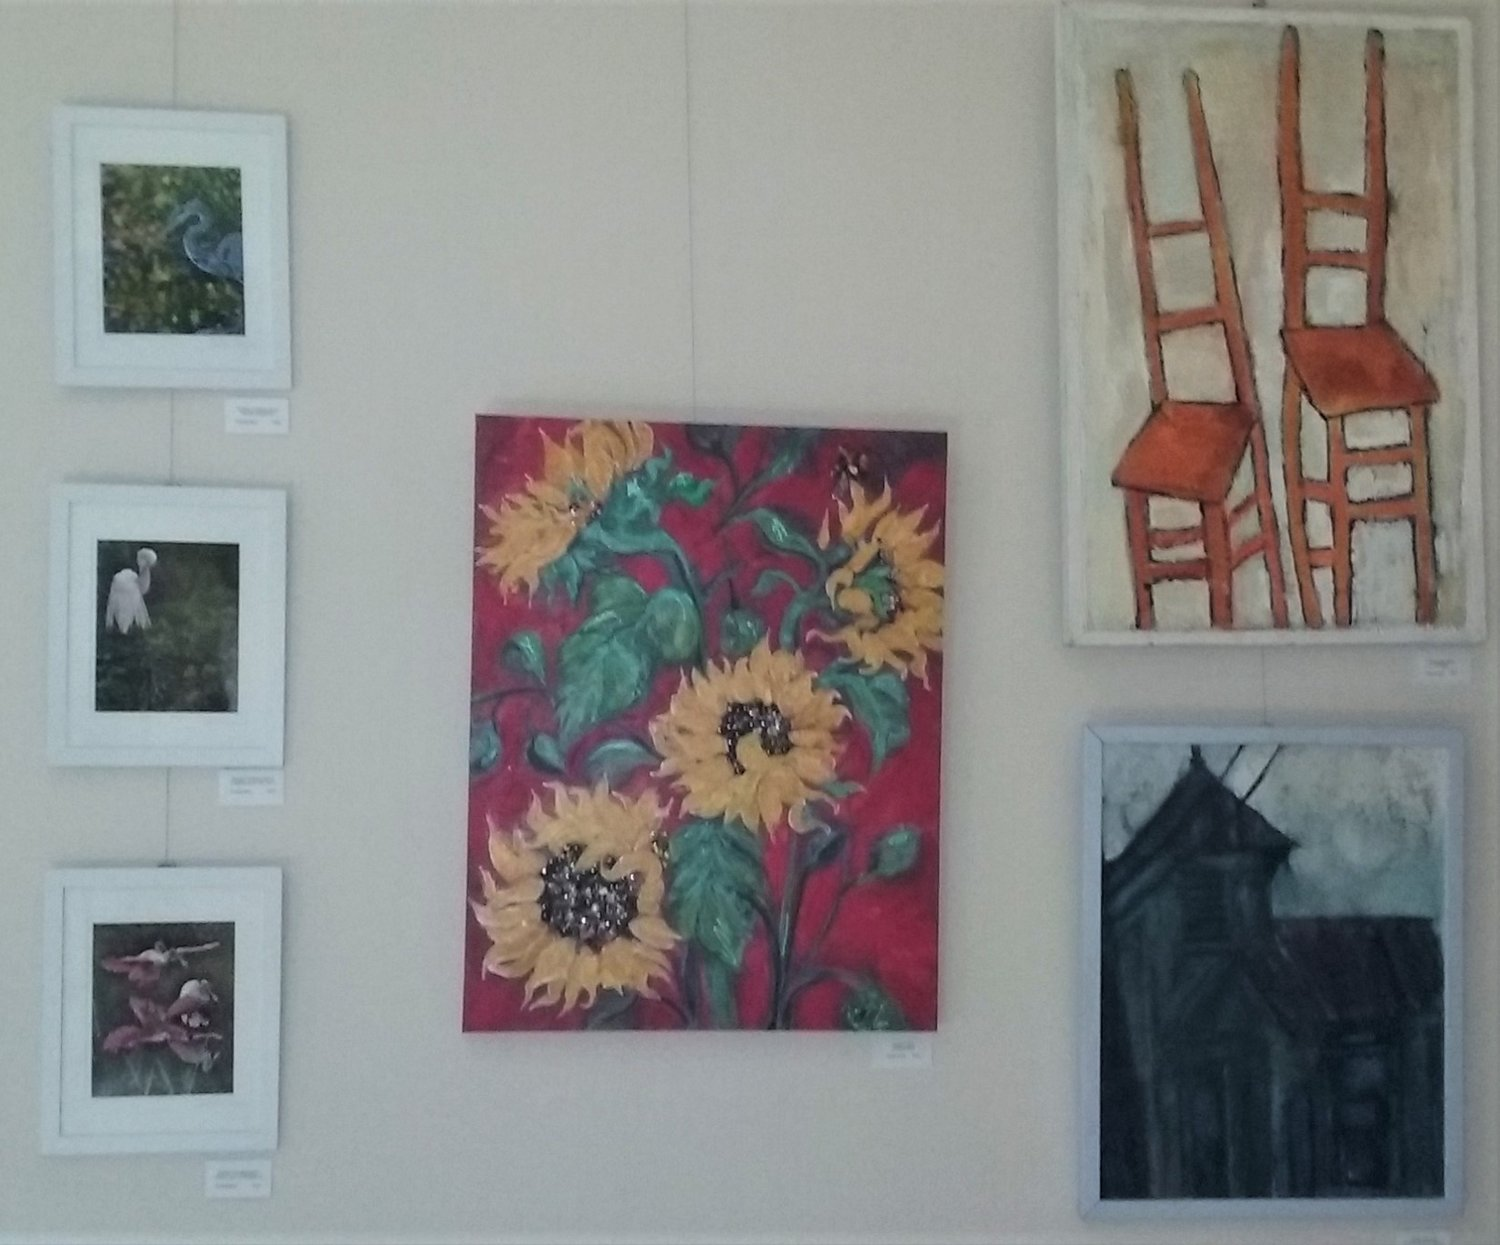 A group of artworks is seen on one wall of the rotunda.